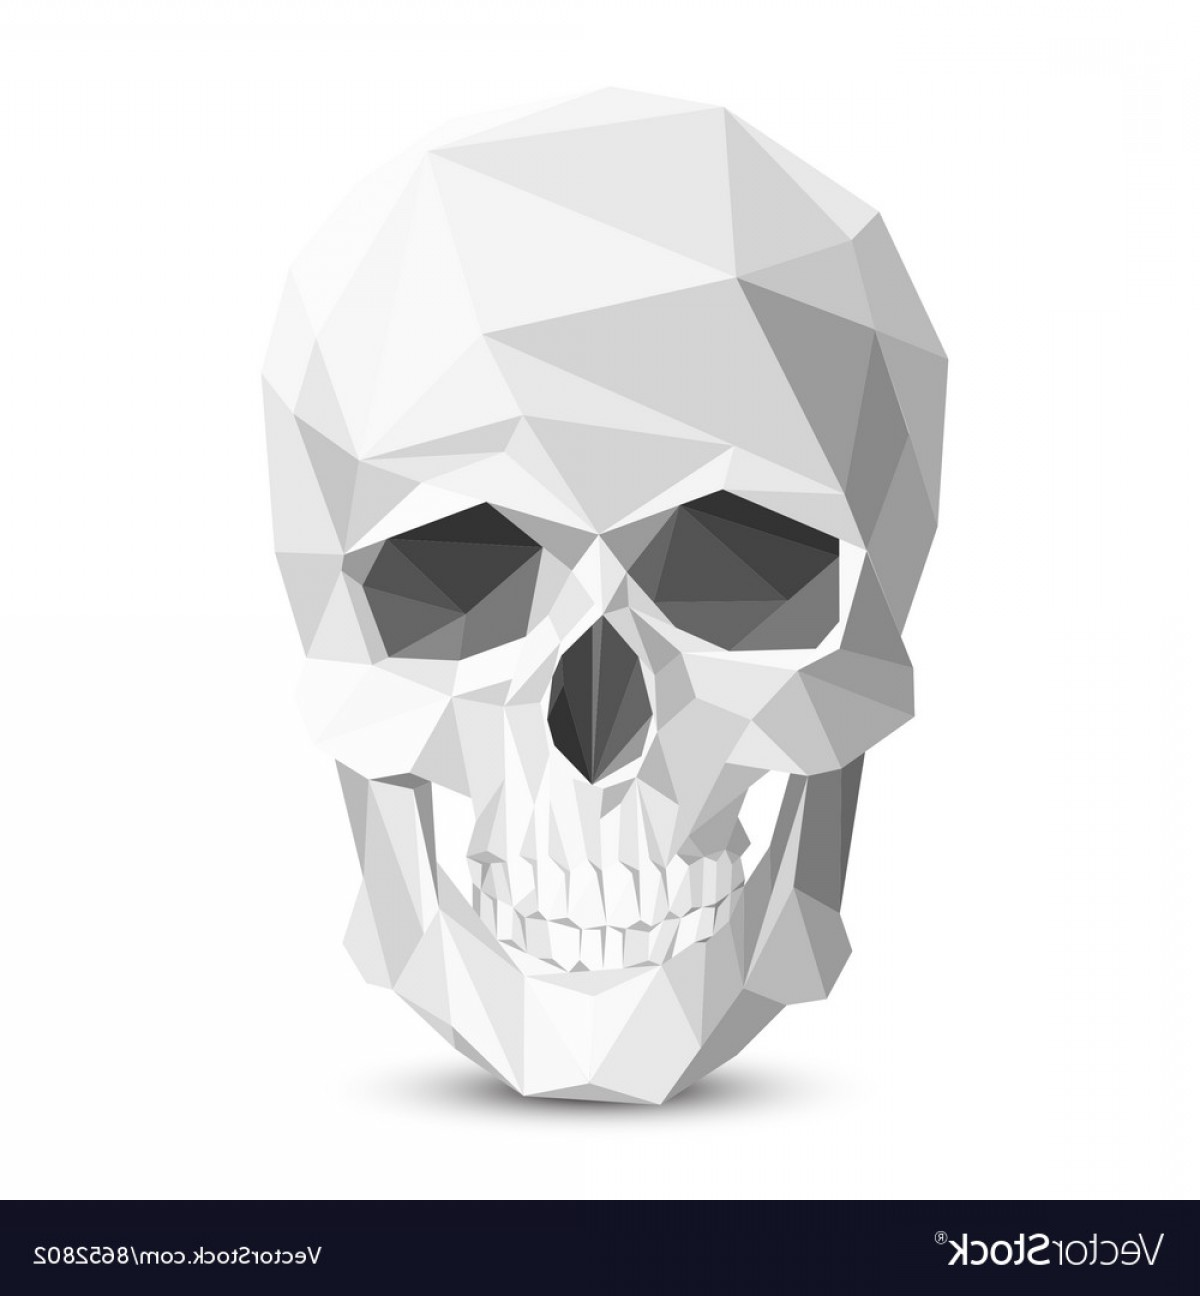 His And Hers Skulls Vector: Colorful Geometric Low Poly Skull Vector